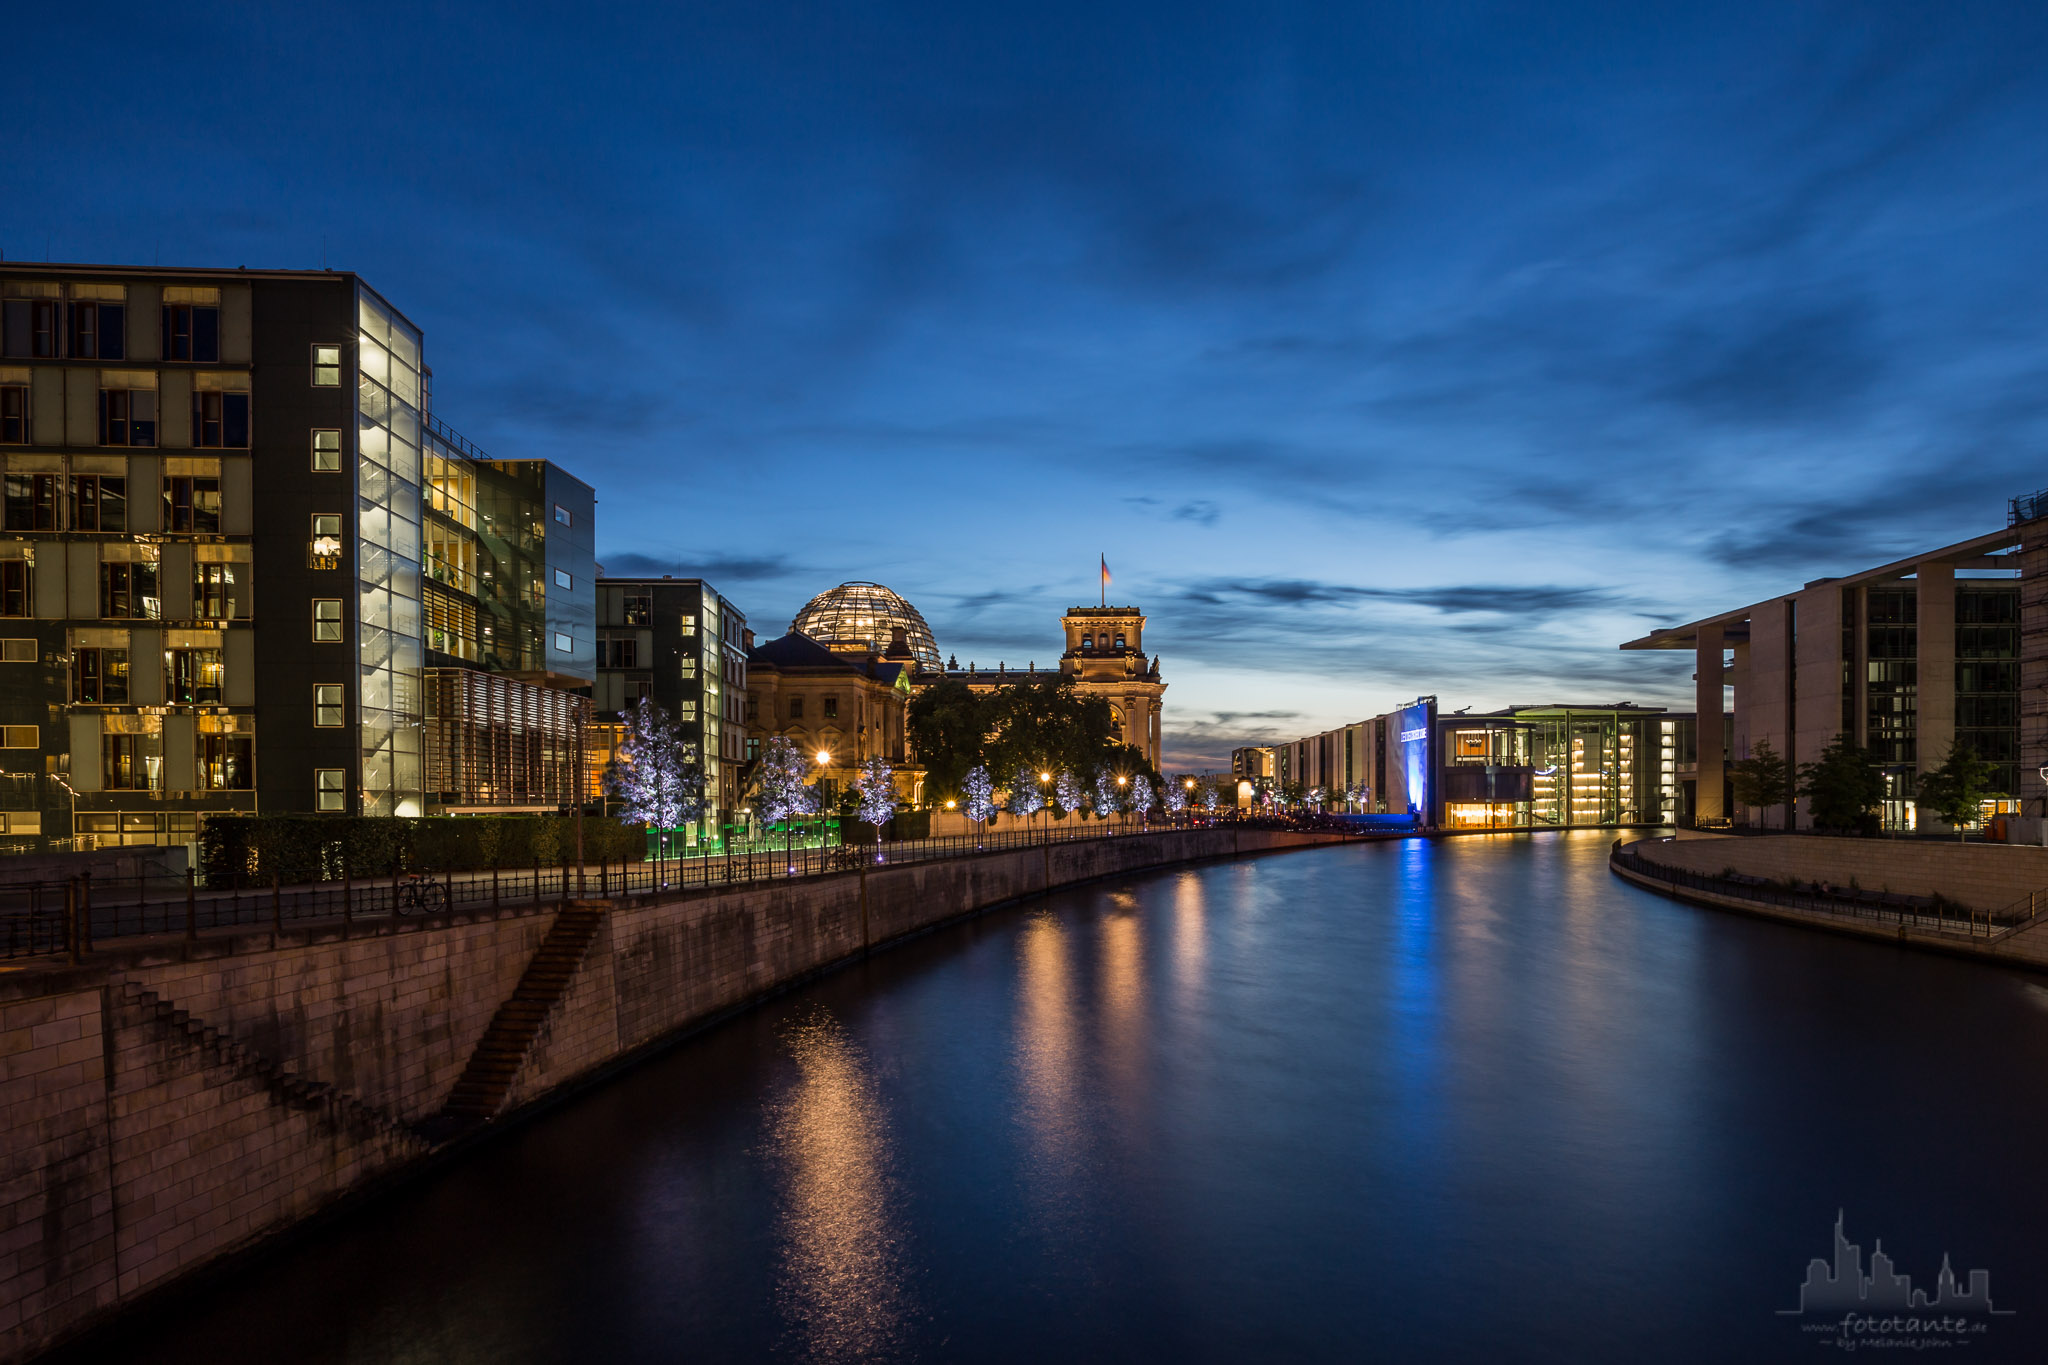 Blue hour at the Reichstagufer, Berlin, Germany